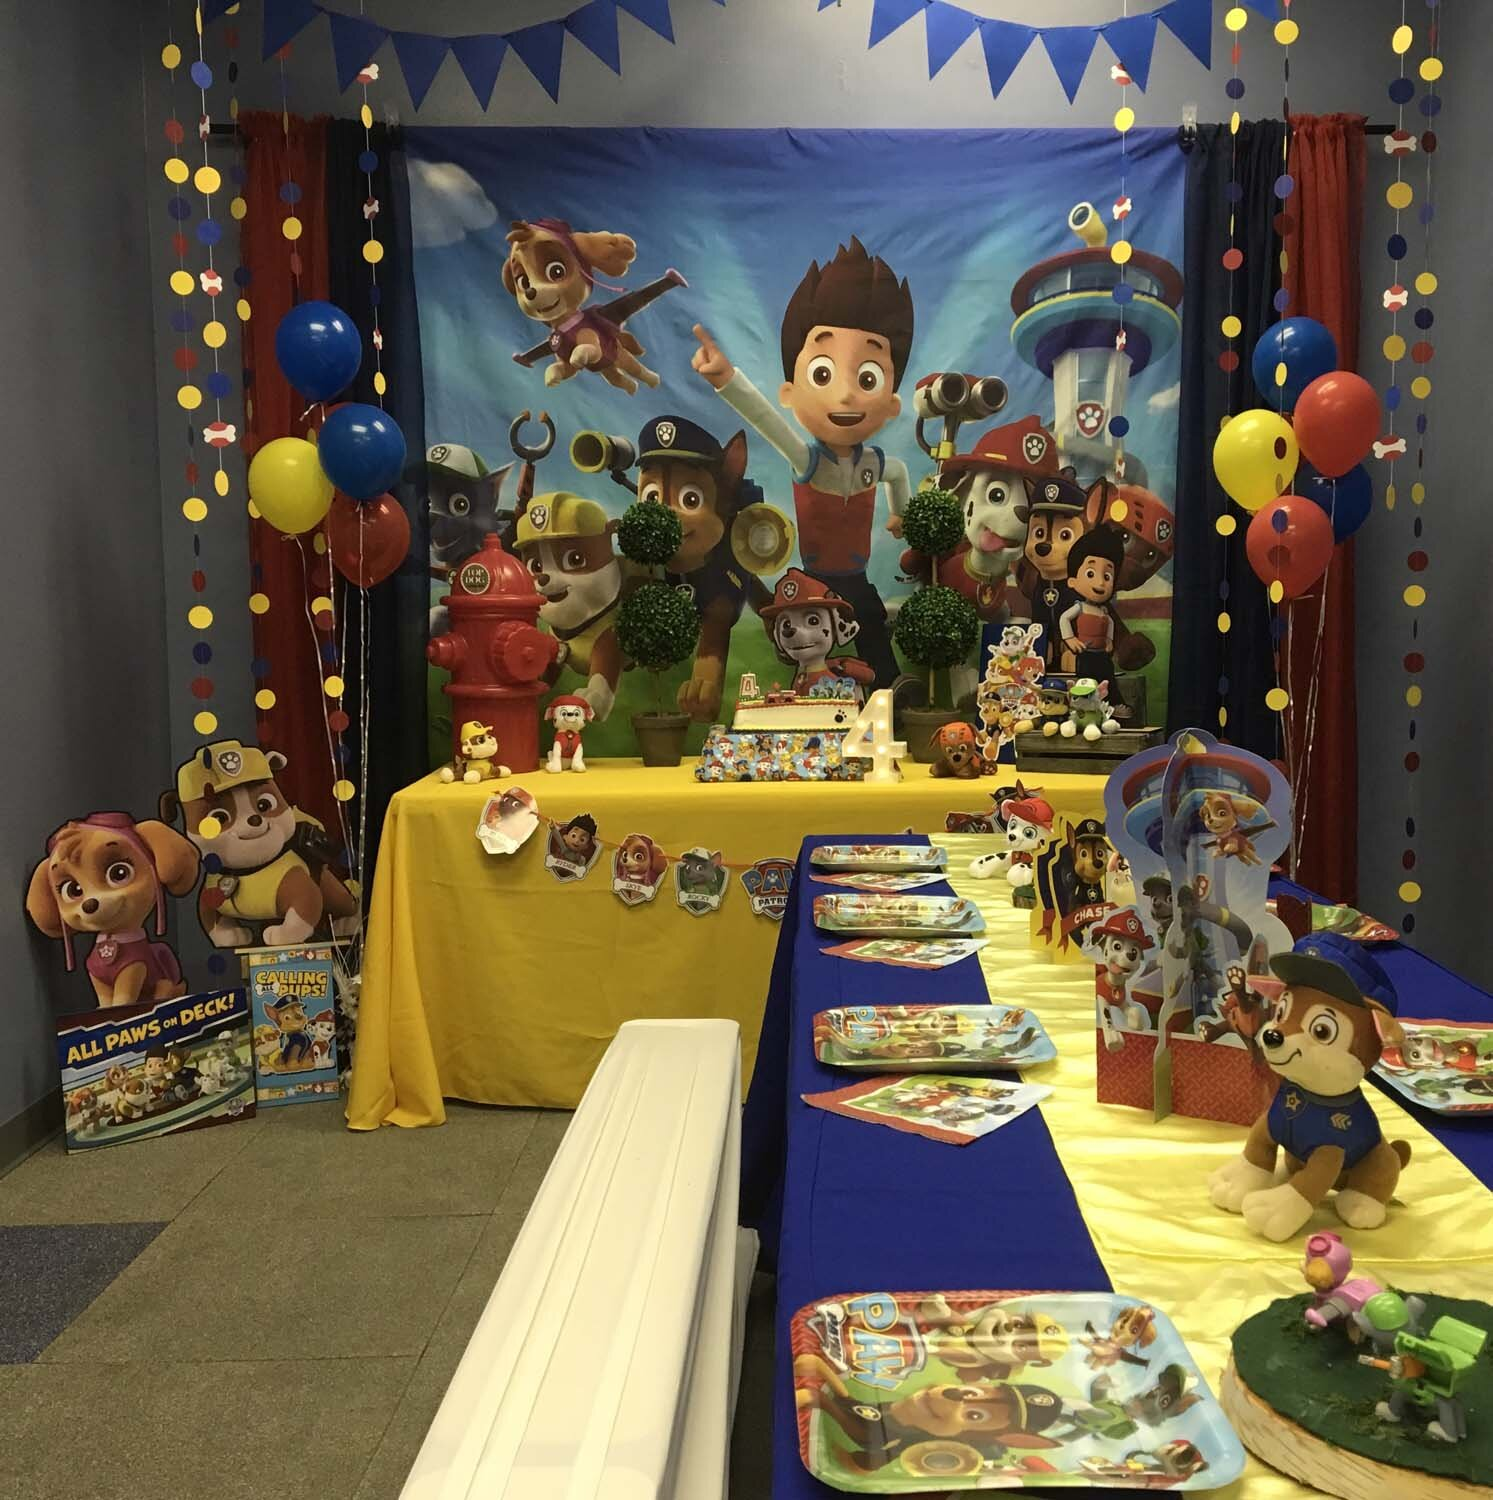 Paw Patrol Themed Party For 4 Year Old Birthday Boy Princesses Princes